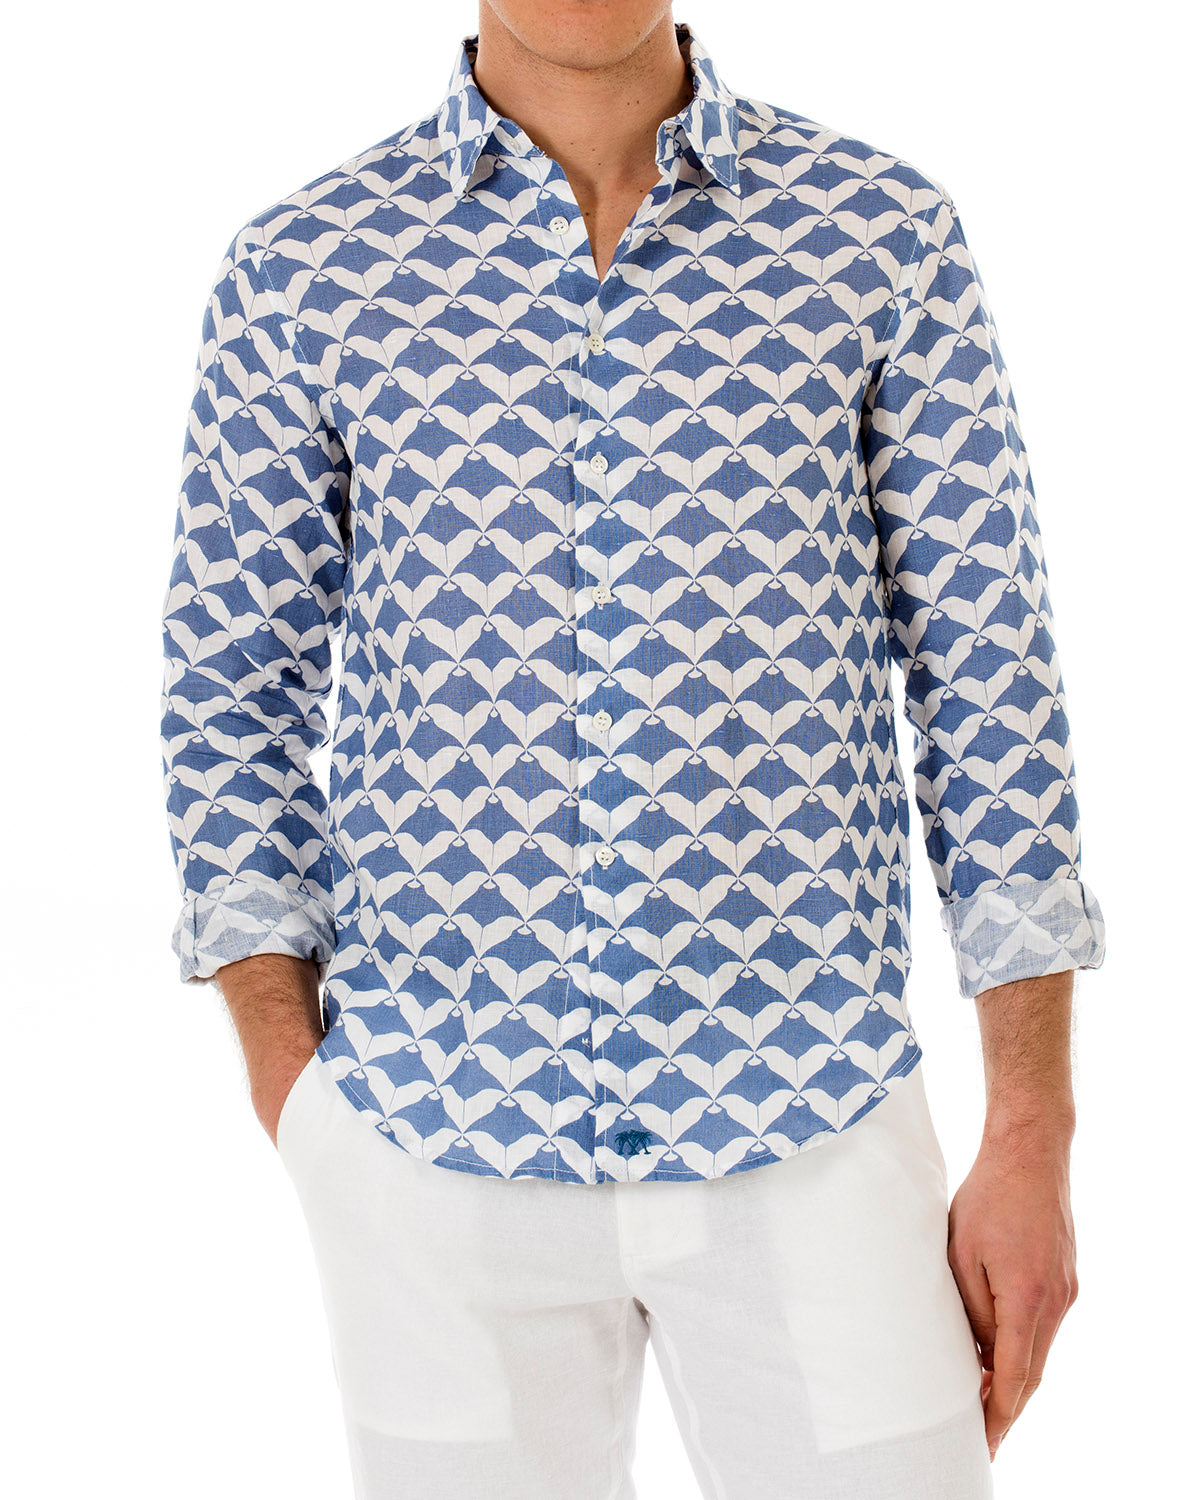 Mens Linen Shirt : MANTA RAY - NAVY front